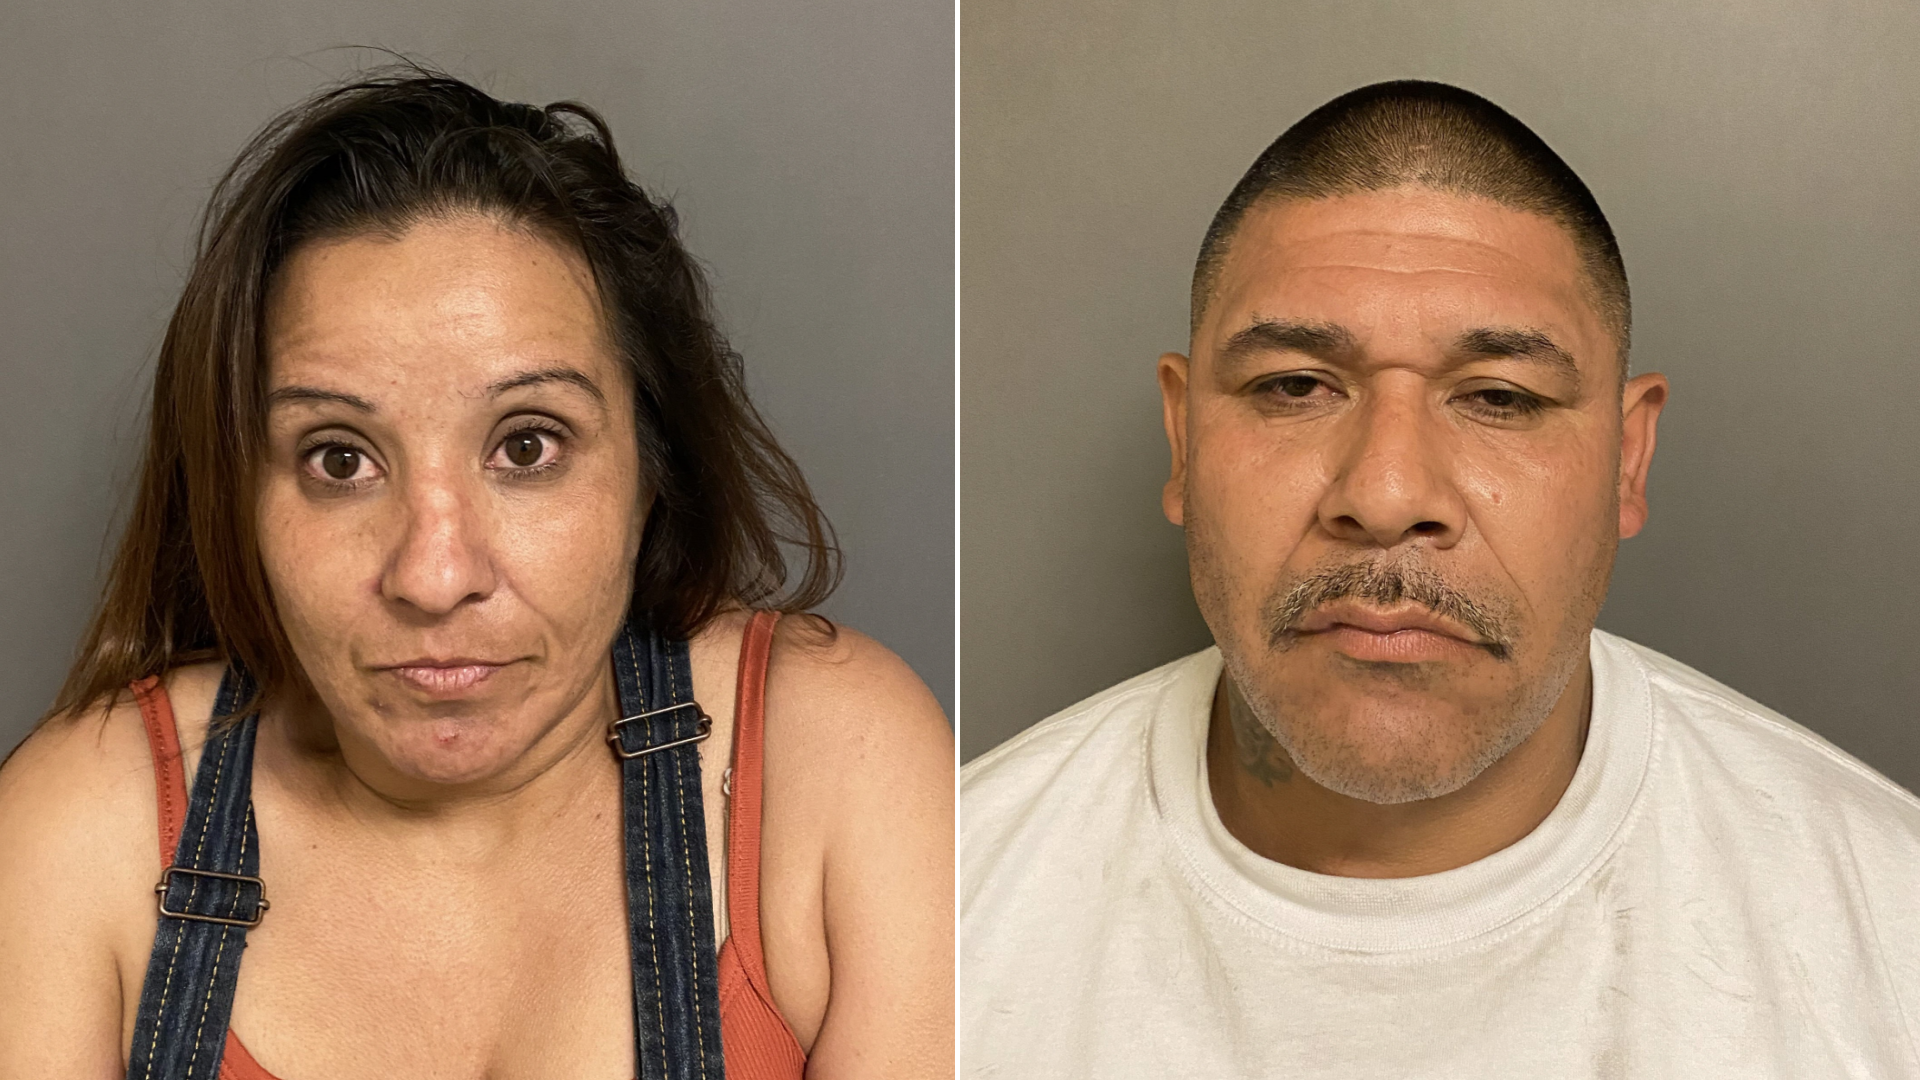 Gilbert Garcia of Pomona and Lisa Hafley of Redlands are seen in booking photos provided by the Irvine Police Department on Aug. 13, 2021.